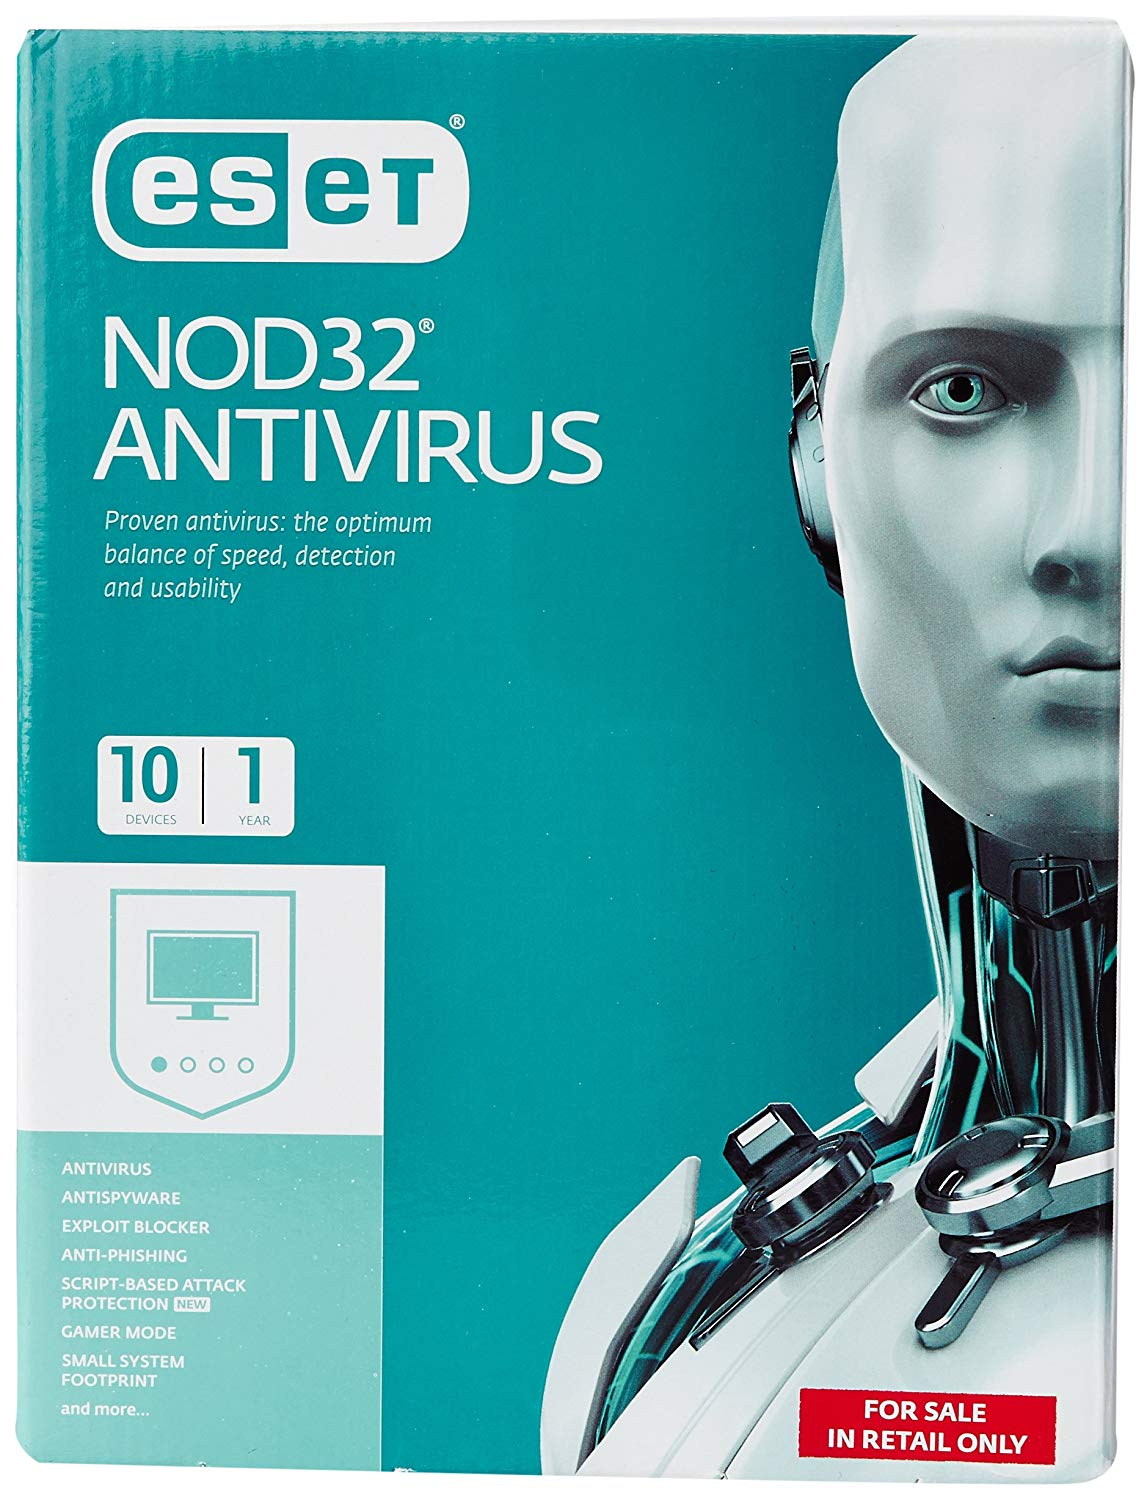 ESET NOD32 Antivirus - 10 PCS for 1 Year (CD)